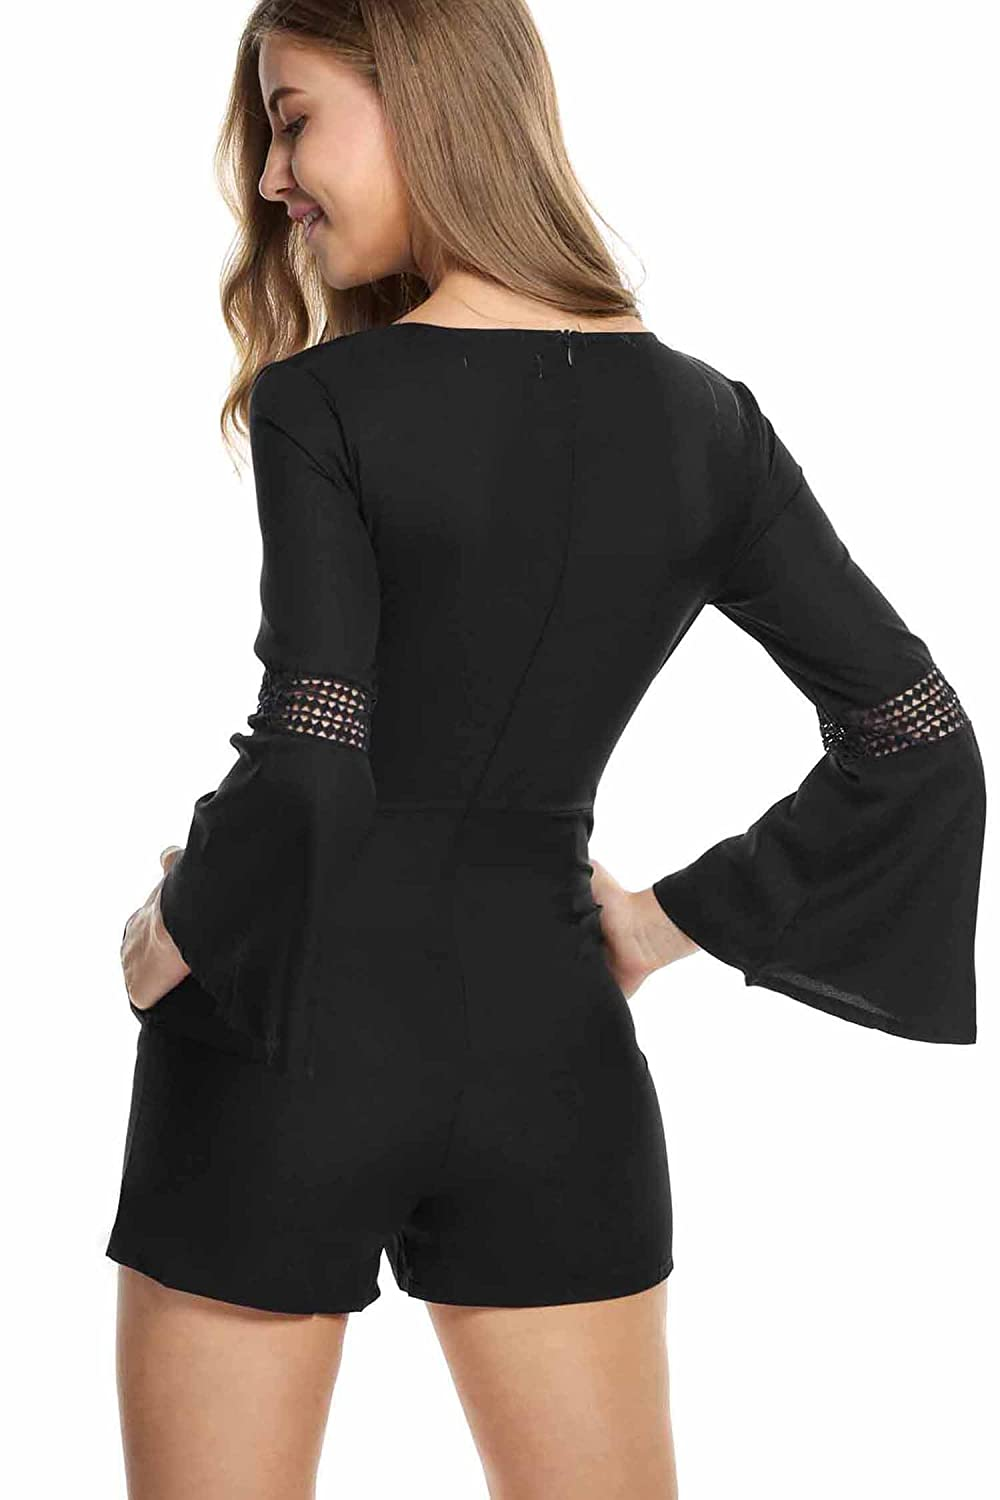 Zeagoo Women's V Neck Crochet Long Sleeve Jumpsuit and Romper With Pockets